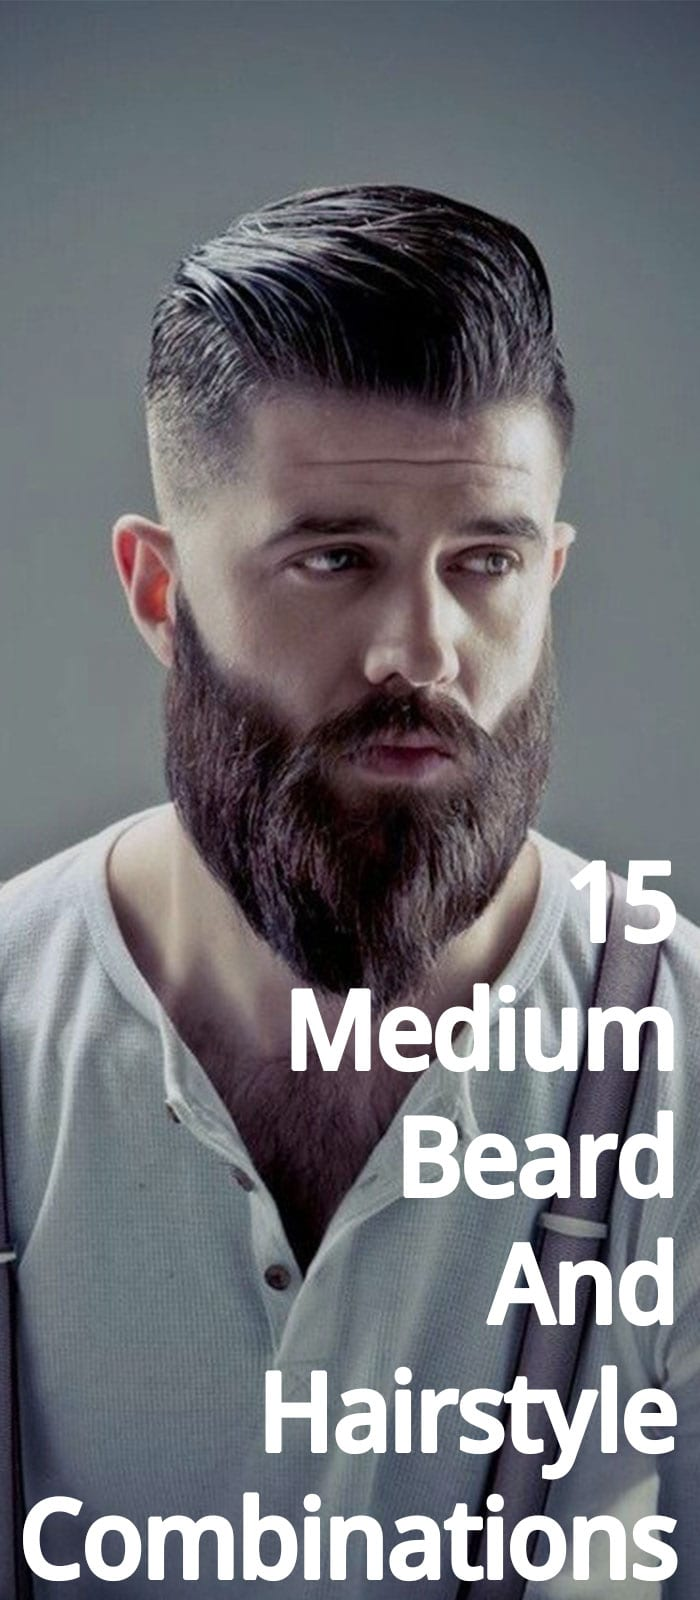 15 Medium Beard And Hairstyle Combinations Men Should Opt For.